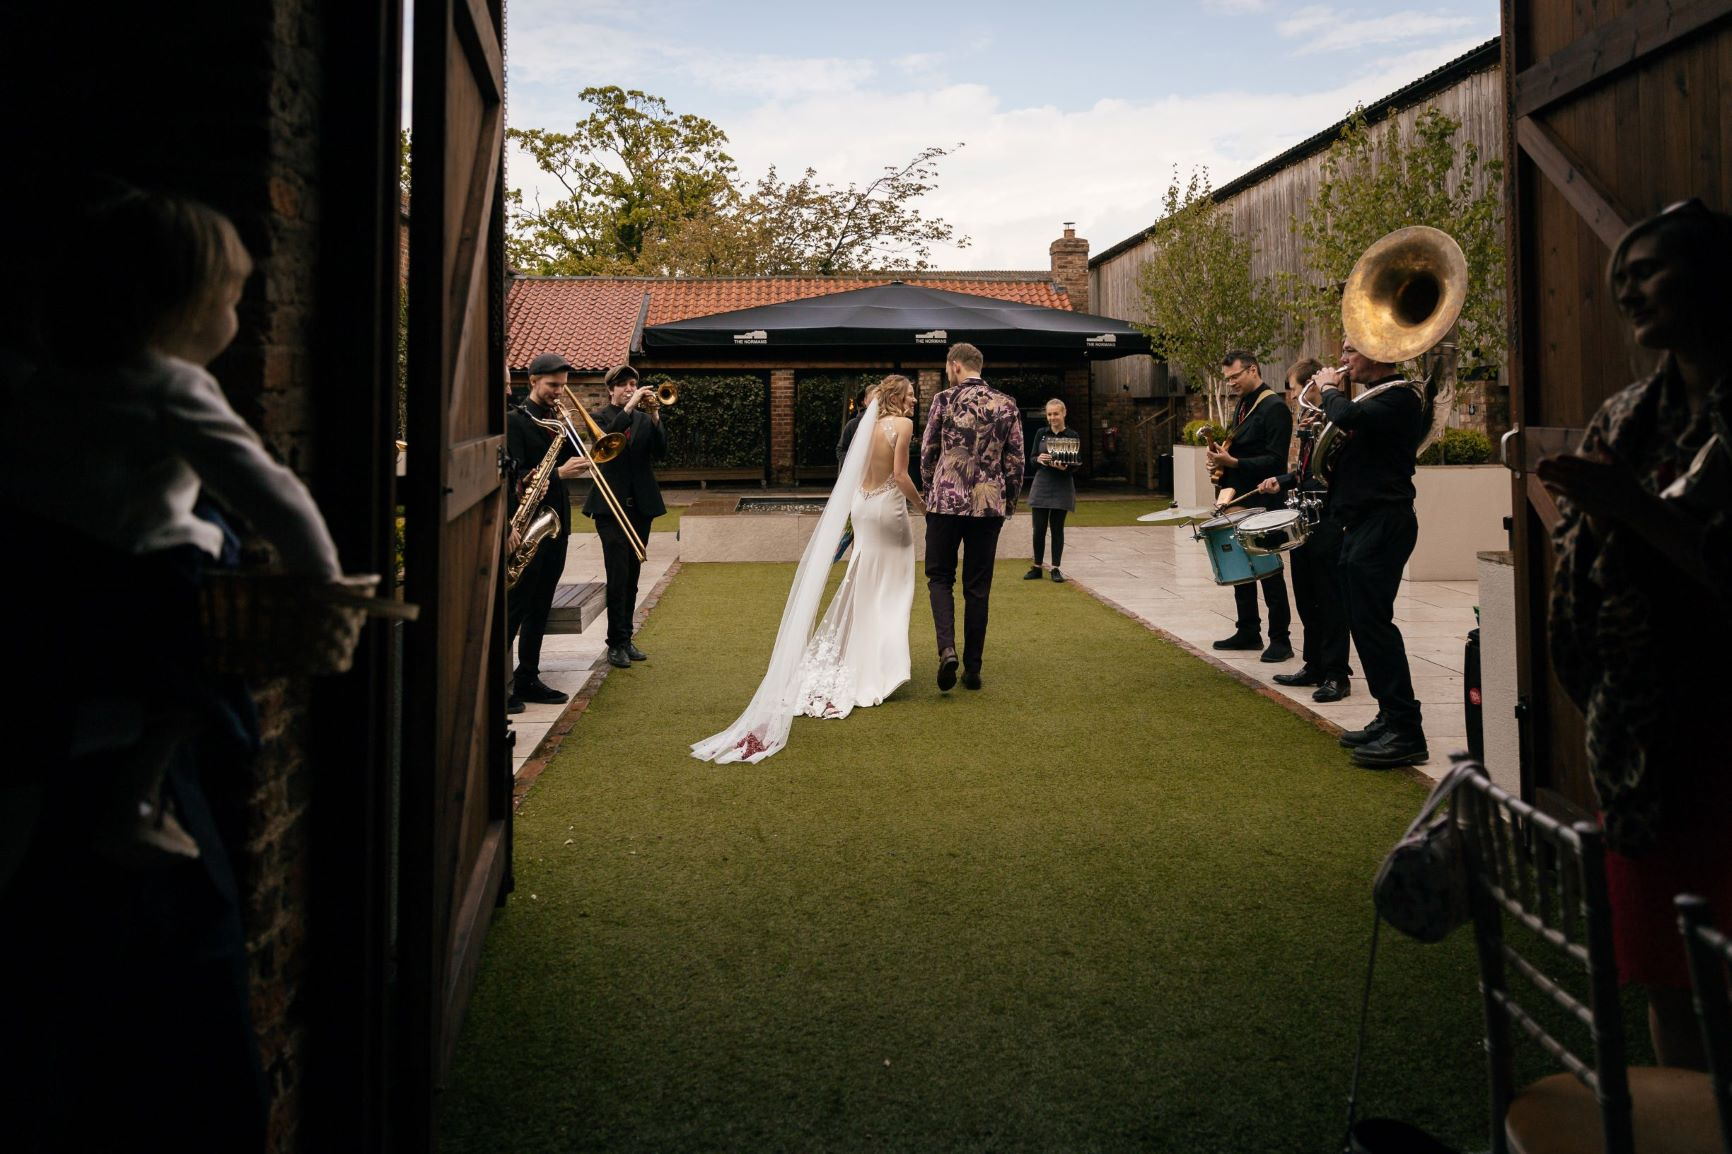 New York Brass Band serenade bride and groom in The Normans Courtyard. Photo by www.julesbarron.com